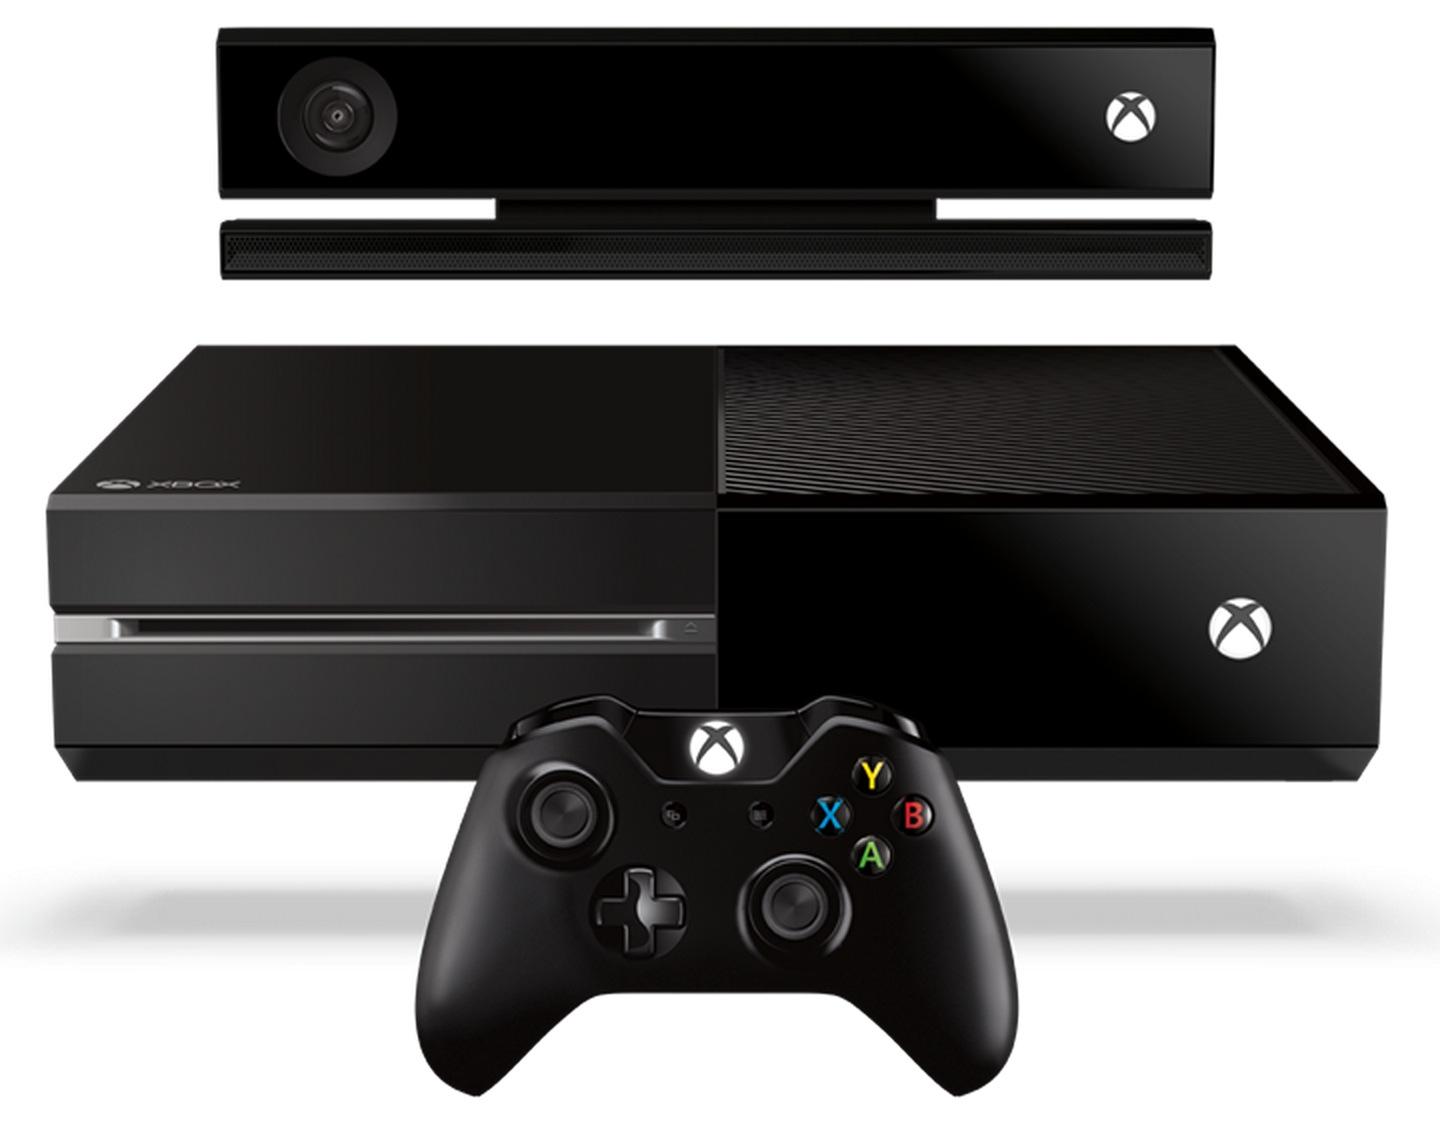 Beam streaming, intuitive Guide and more come to Xbox One